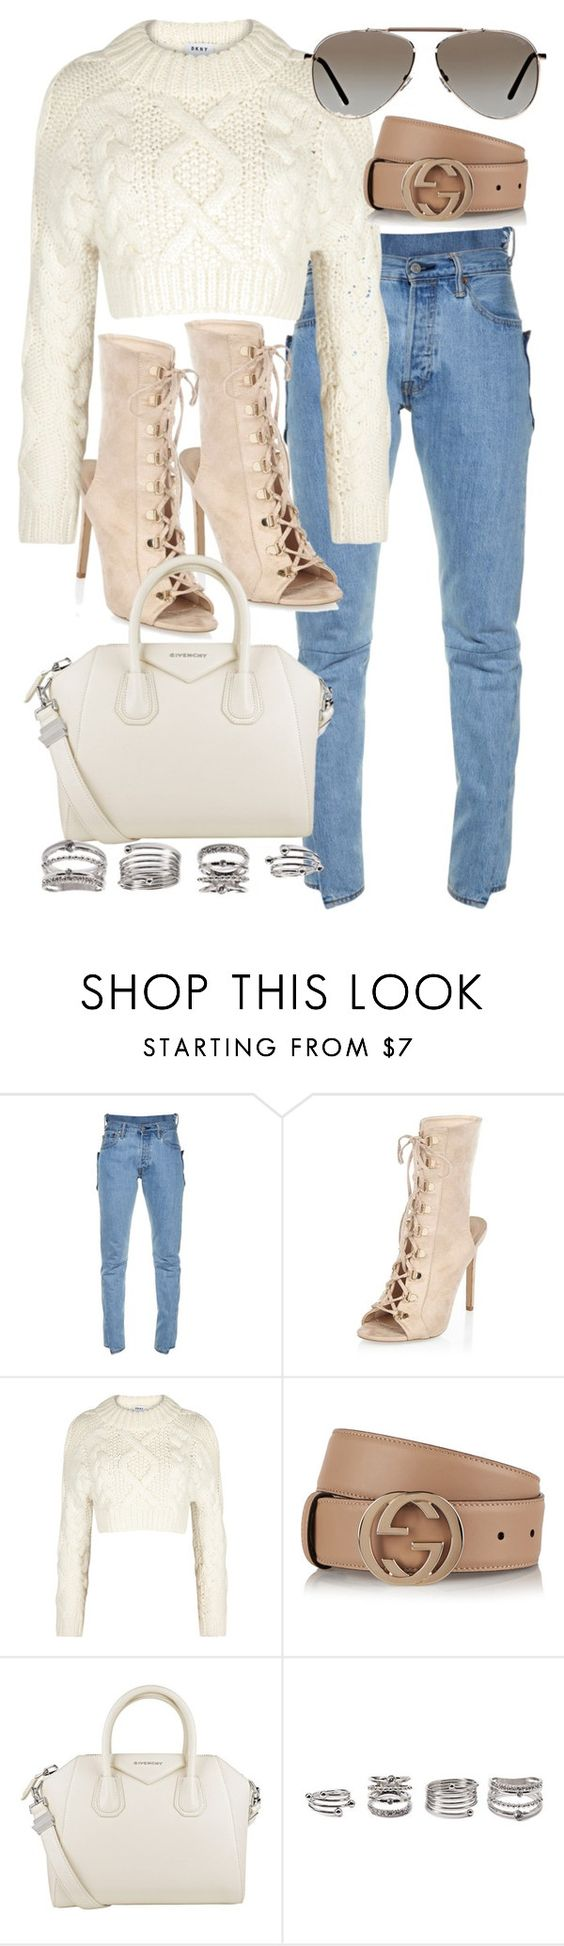 """Untitled #20566"" by florencia95 ❤ liked on Polyvore featuring Vetements, River Island, DKNY, Gucci, Givenchy, Forever 21 and Tom Ford"